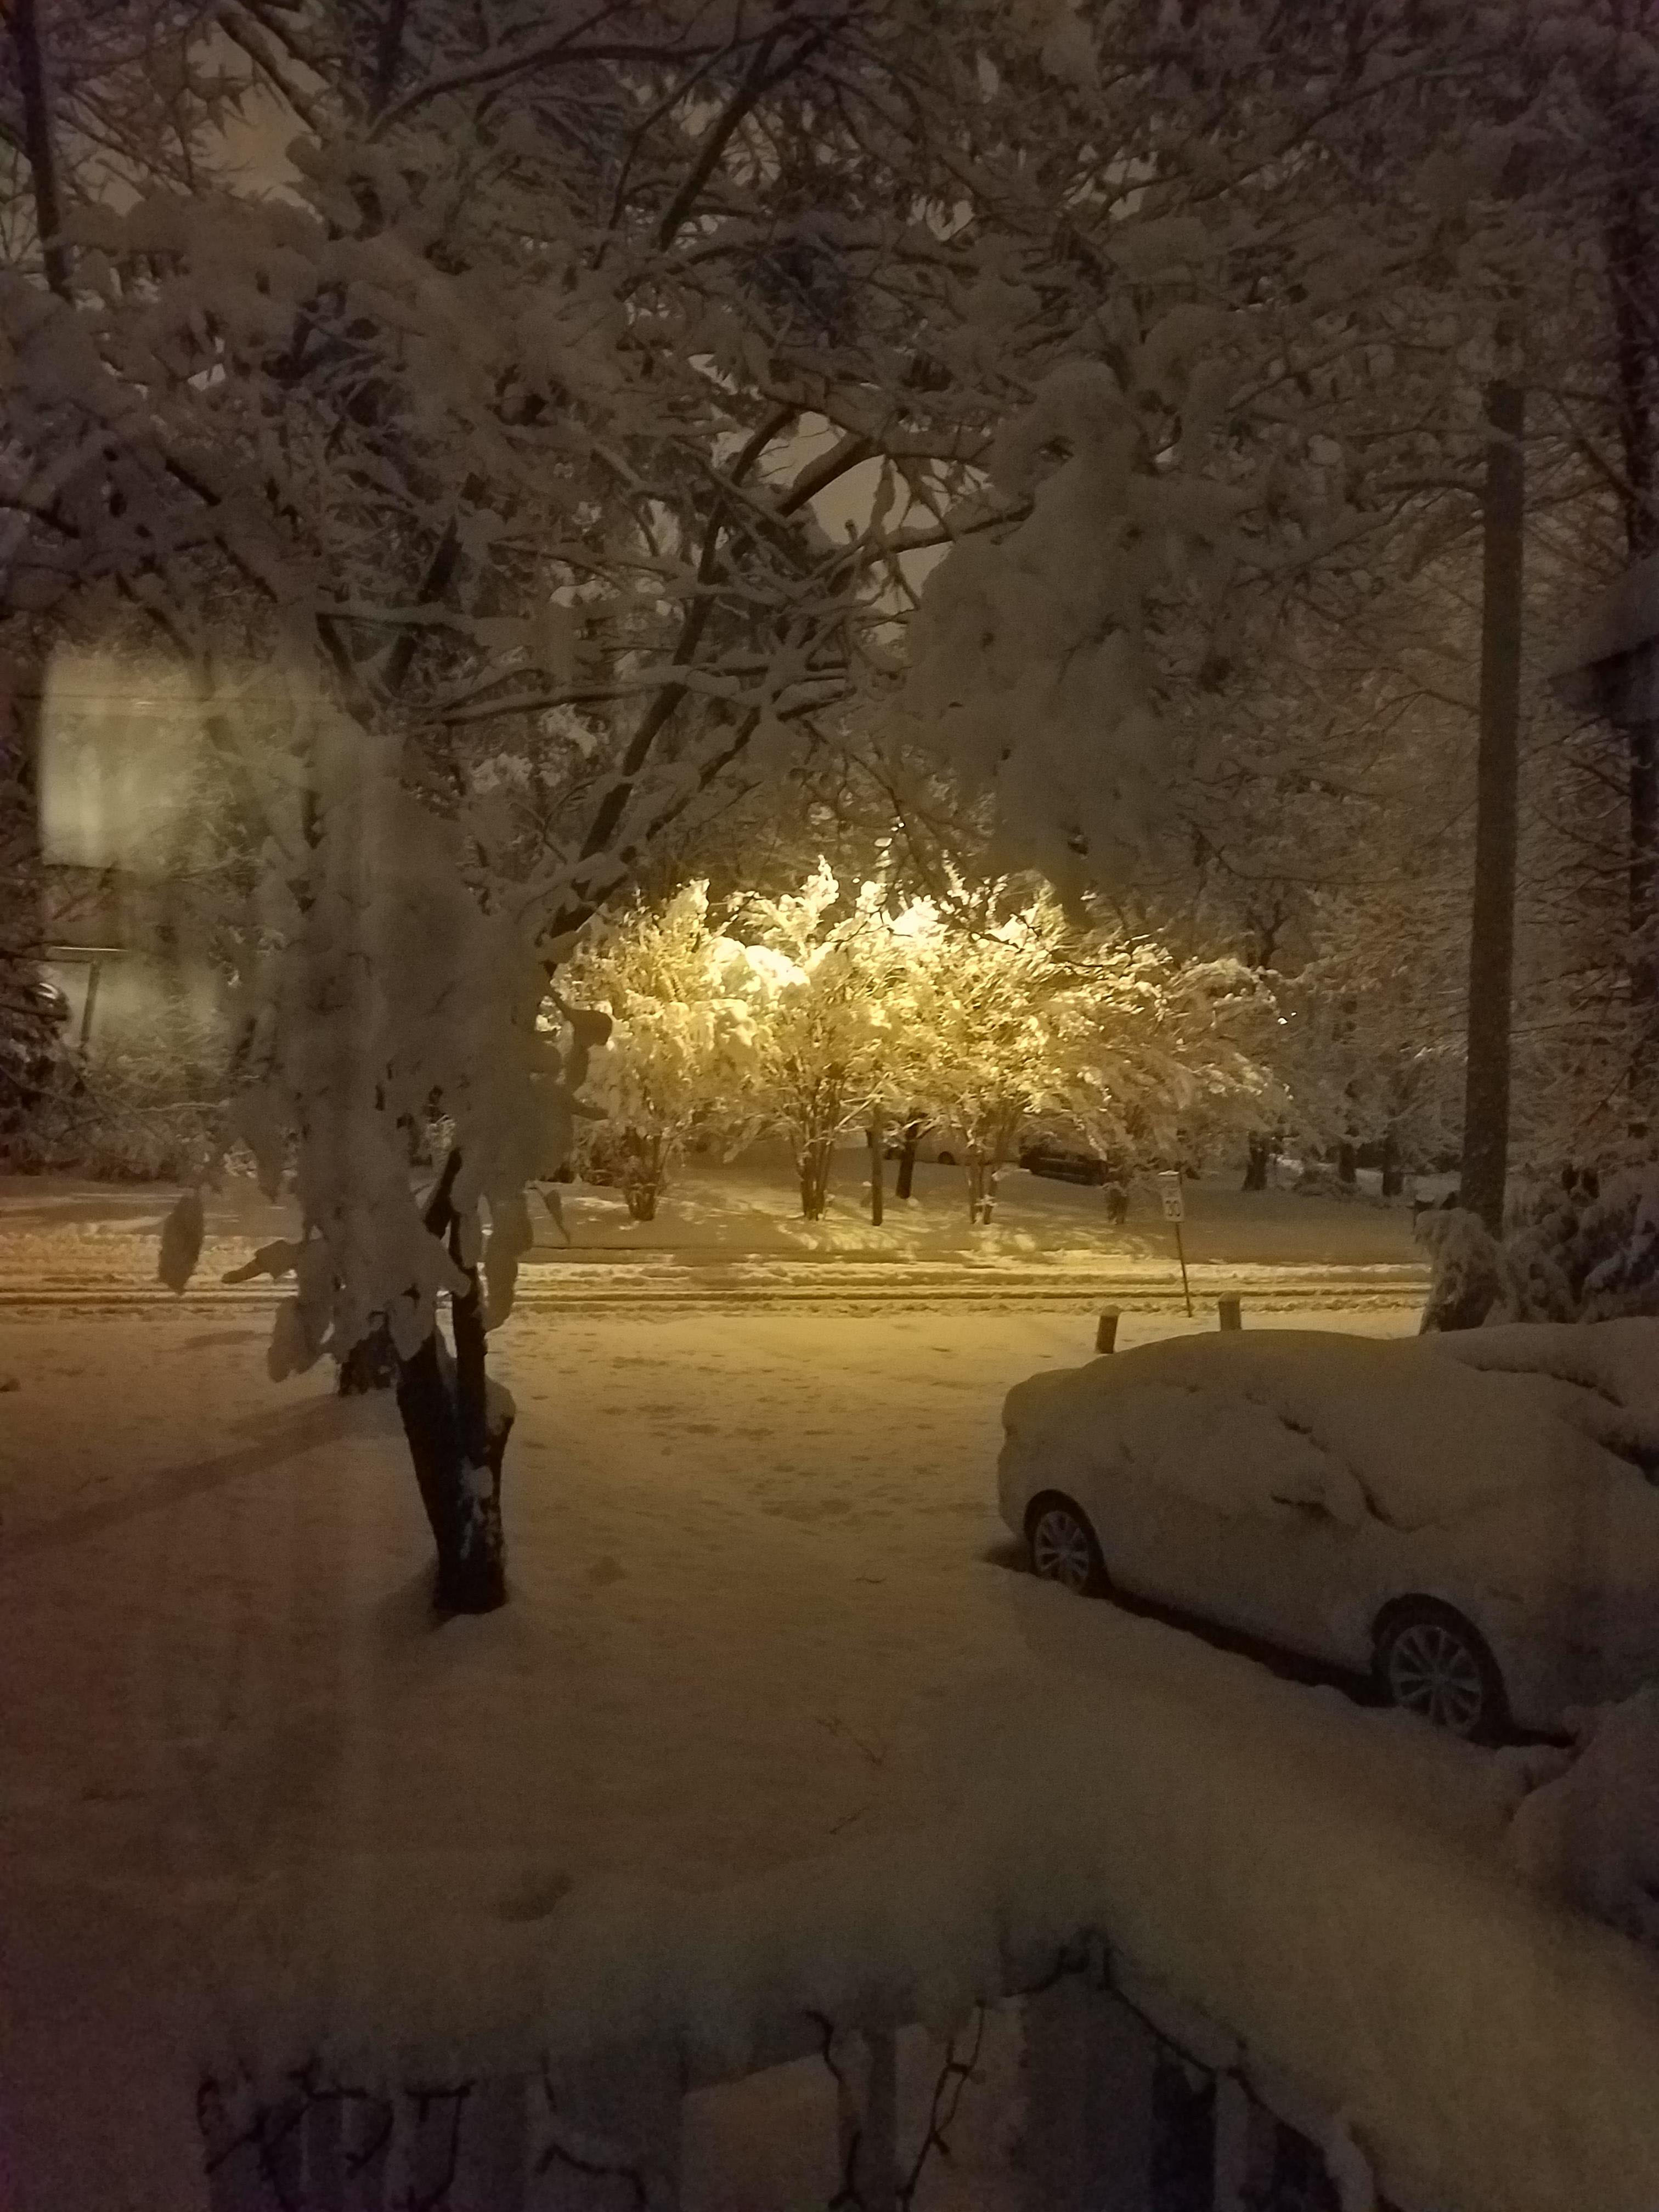 "<div class=""meta image-caption""><div class=""origin-logo origin-image wtvd""><span>WTVD</span></div><span class=""caption-text"">Snow under lights. (Nilsa Baird - ABC11 Eyewitness)</span></div>"